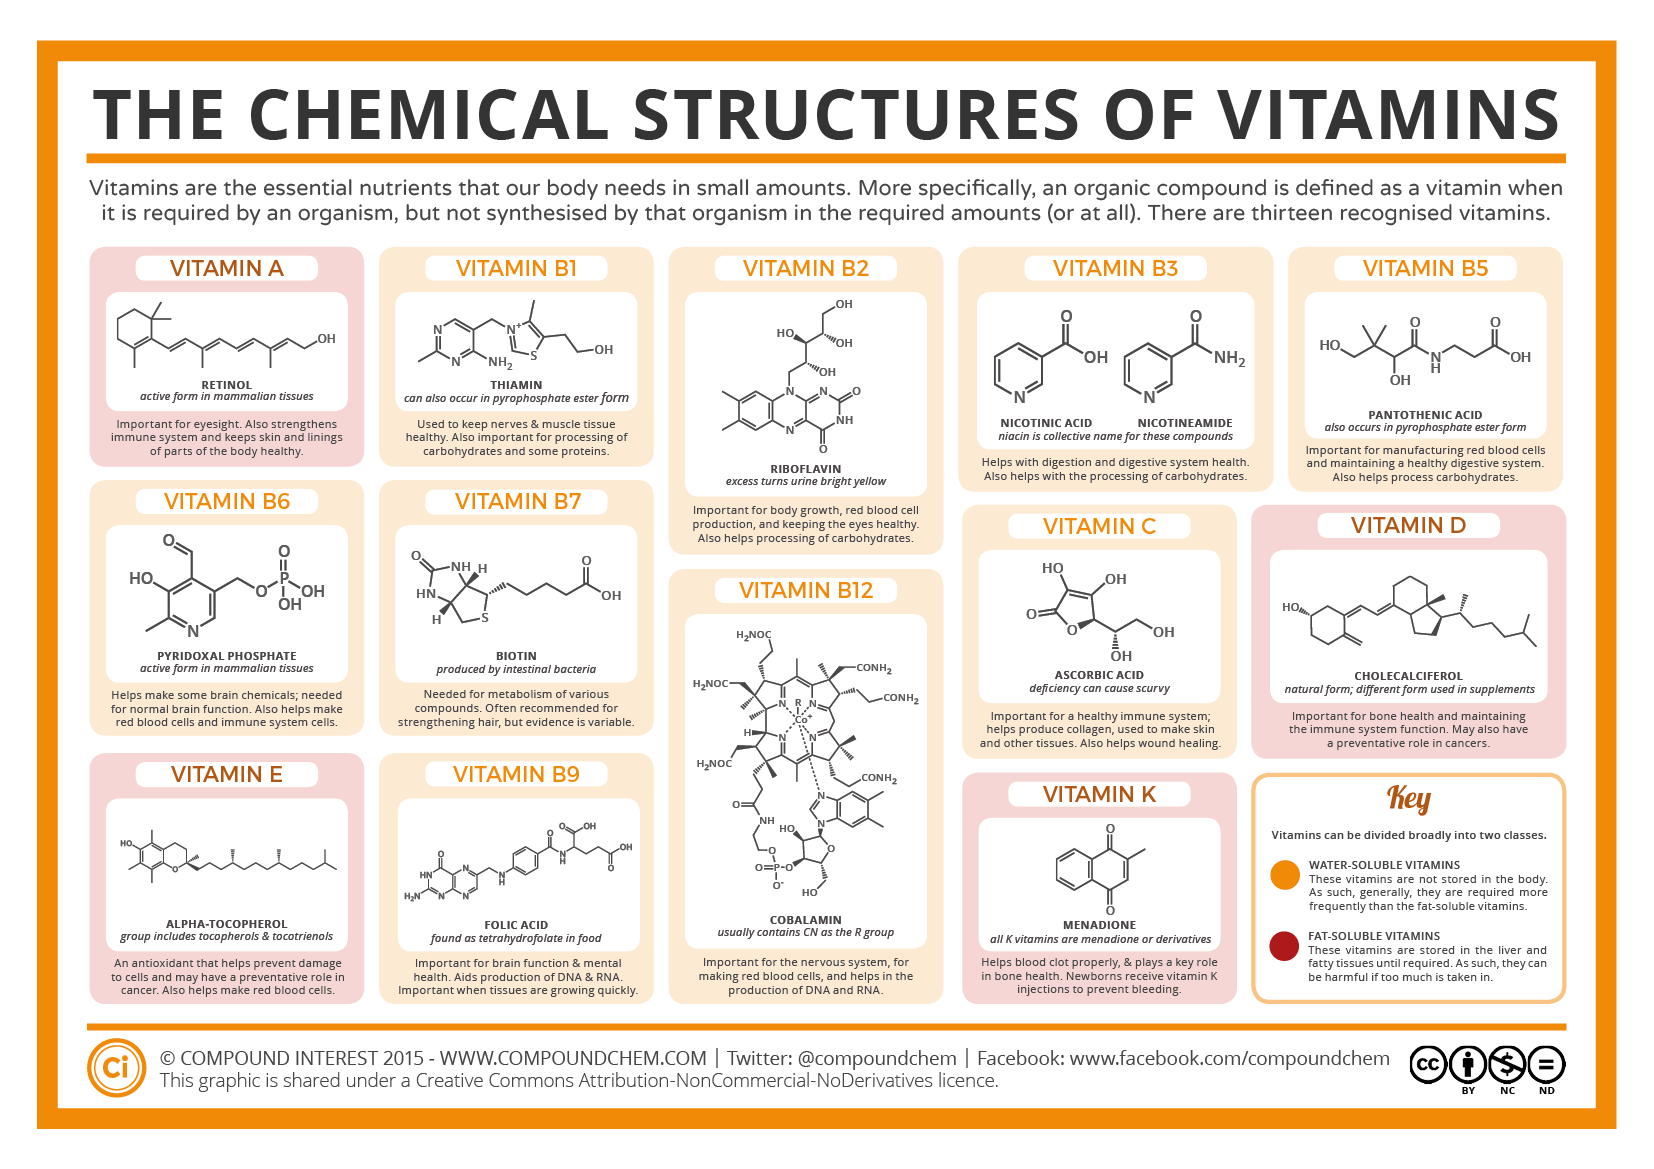 The Chemical Structures of Vitamins – Compound Interest